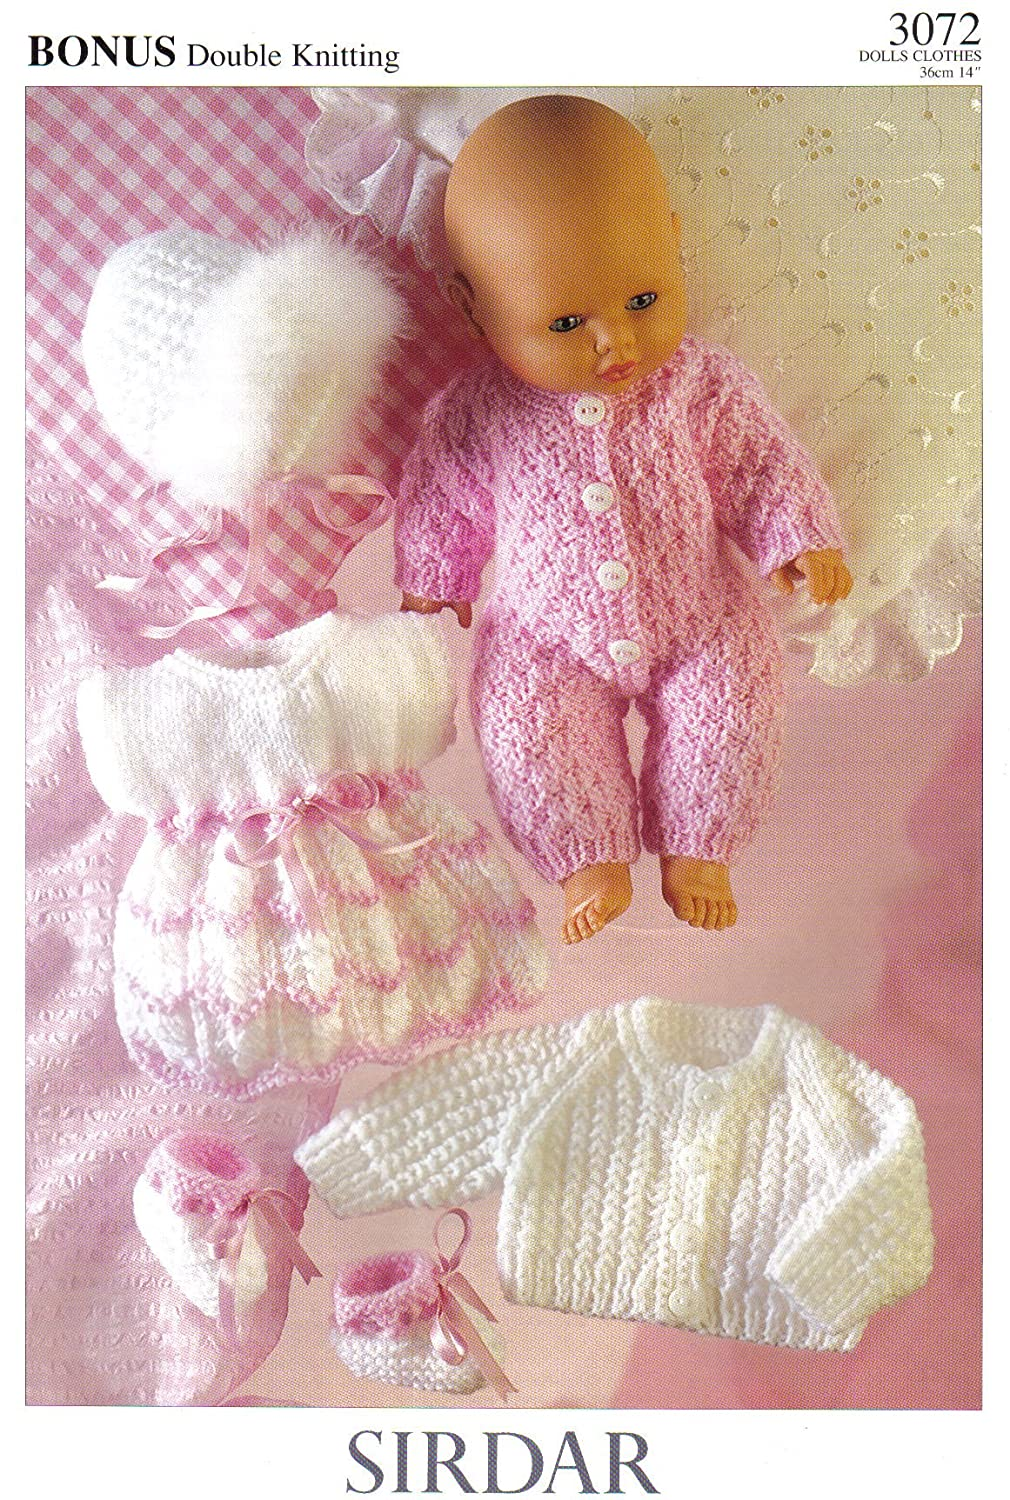 King Cole Dolls Clothes Knitting Pattern 4000: King Cole: Amazon.co ...